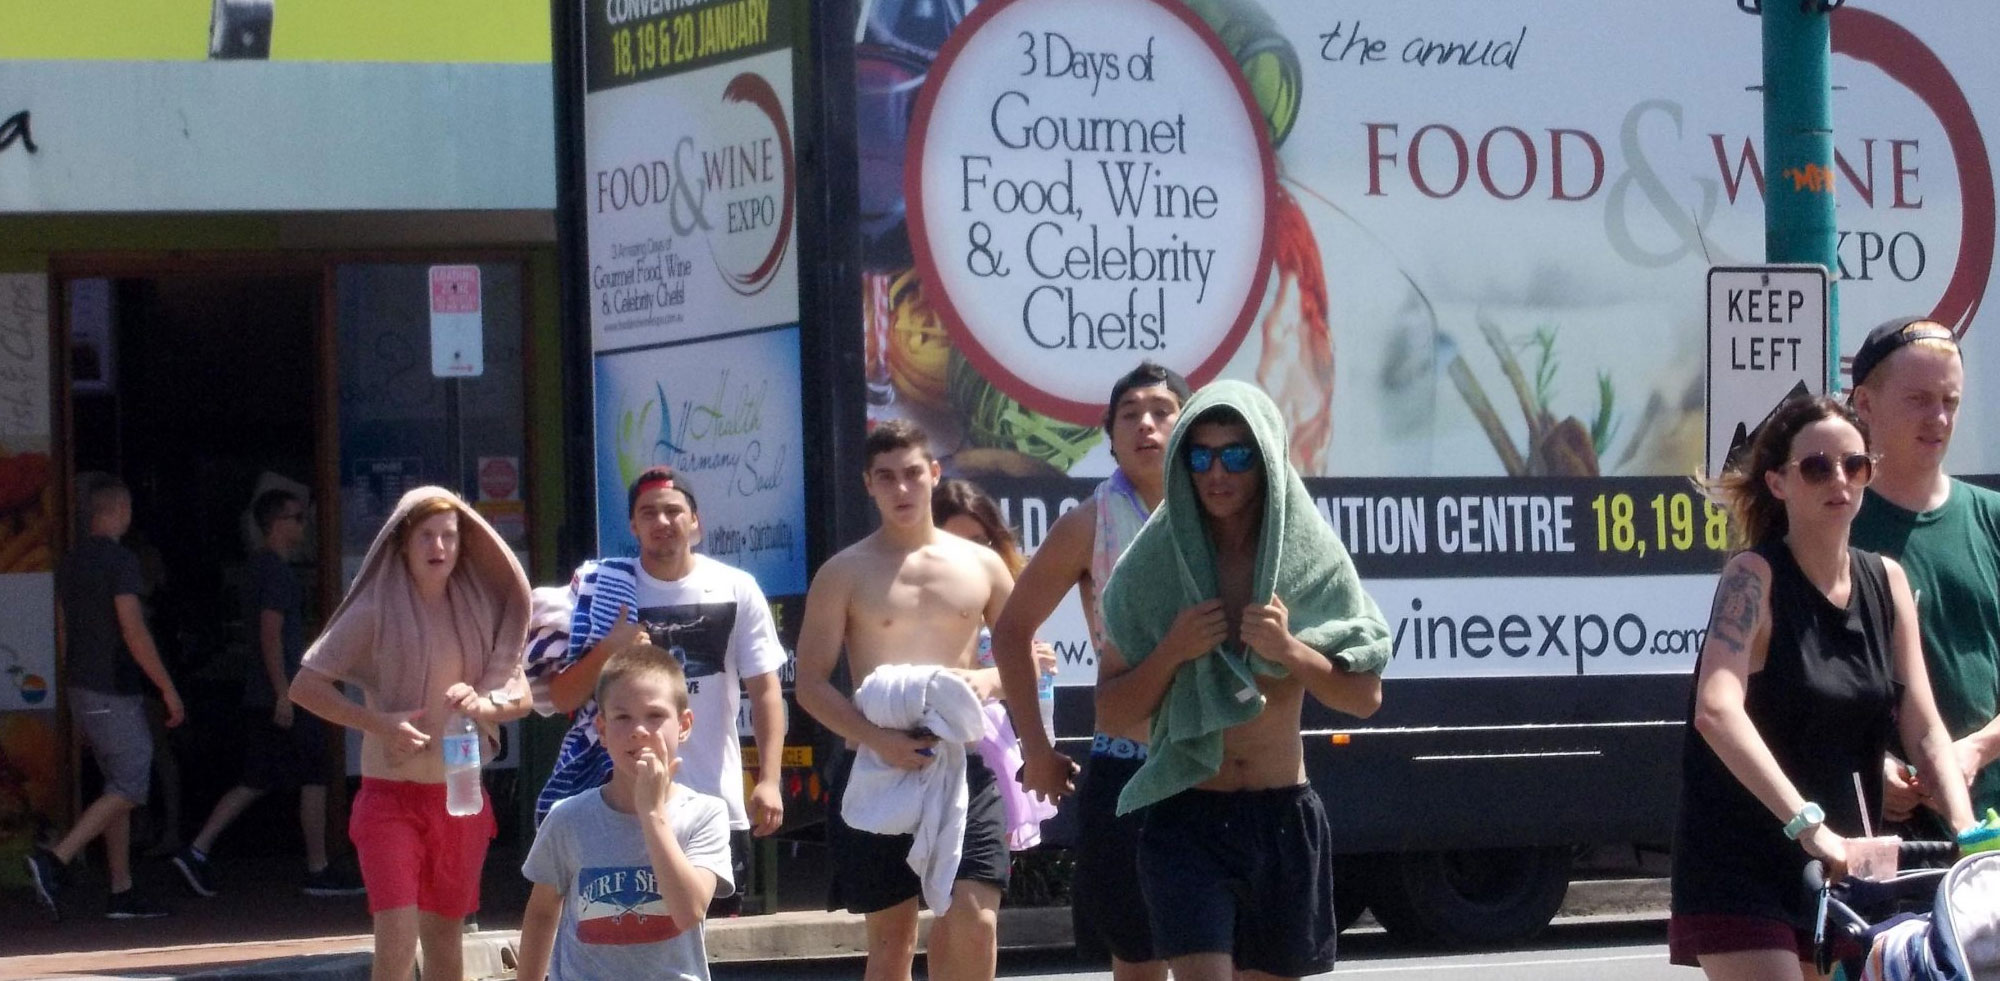 Mobile Billboard for GC Food & Wine Expo